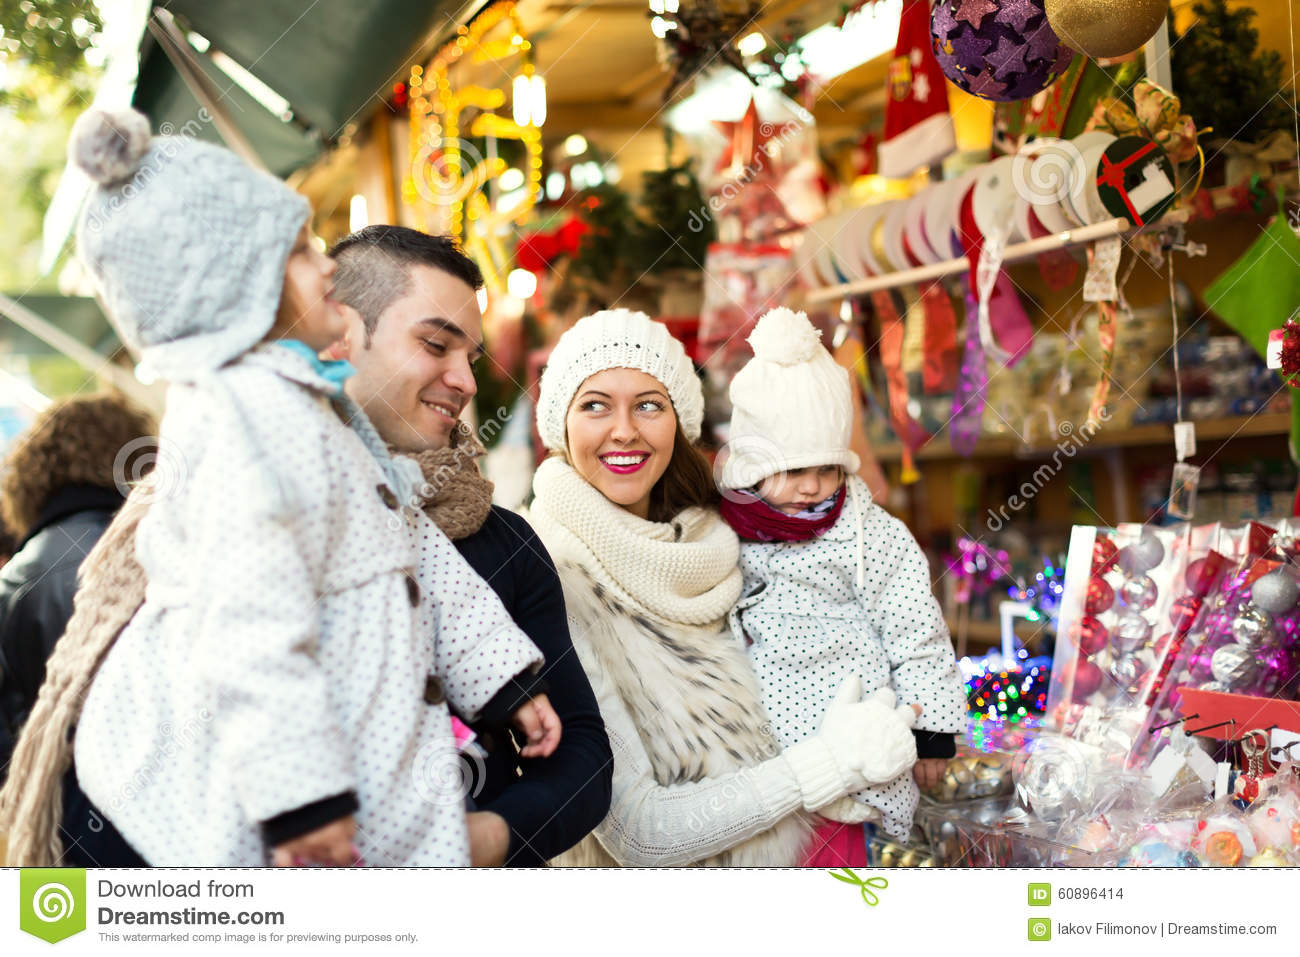 christmas decoration market in the us Us $0246-0275 / piece  1 piece  about 6% of these are christmas decoration supplies,  domestic market (228428) mid east (174115) oceania.